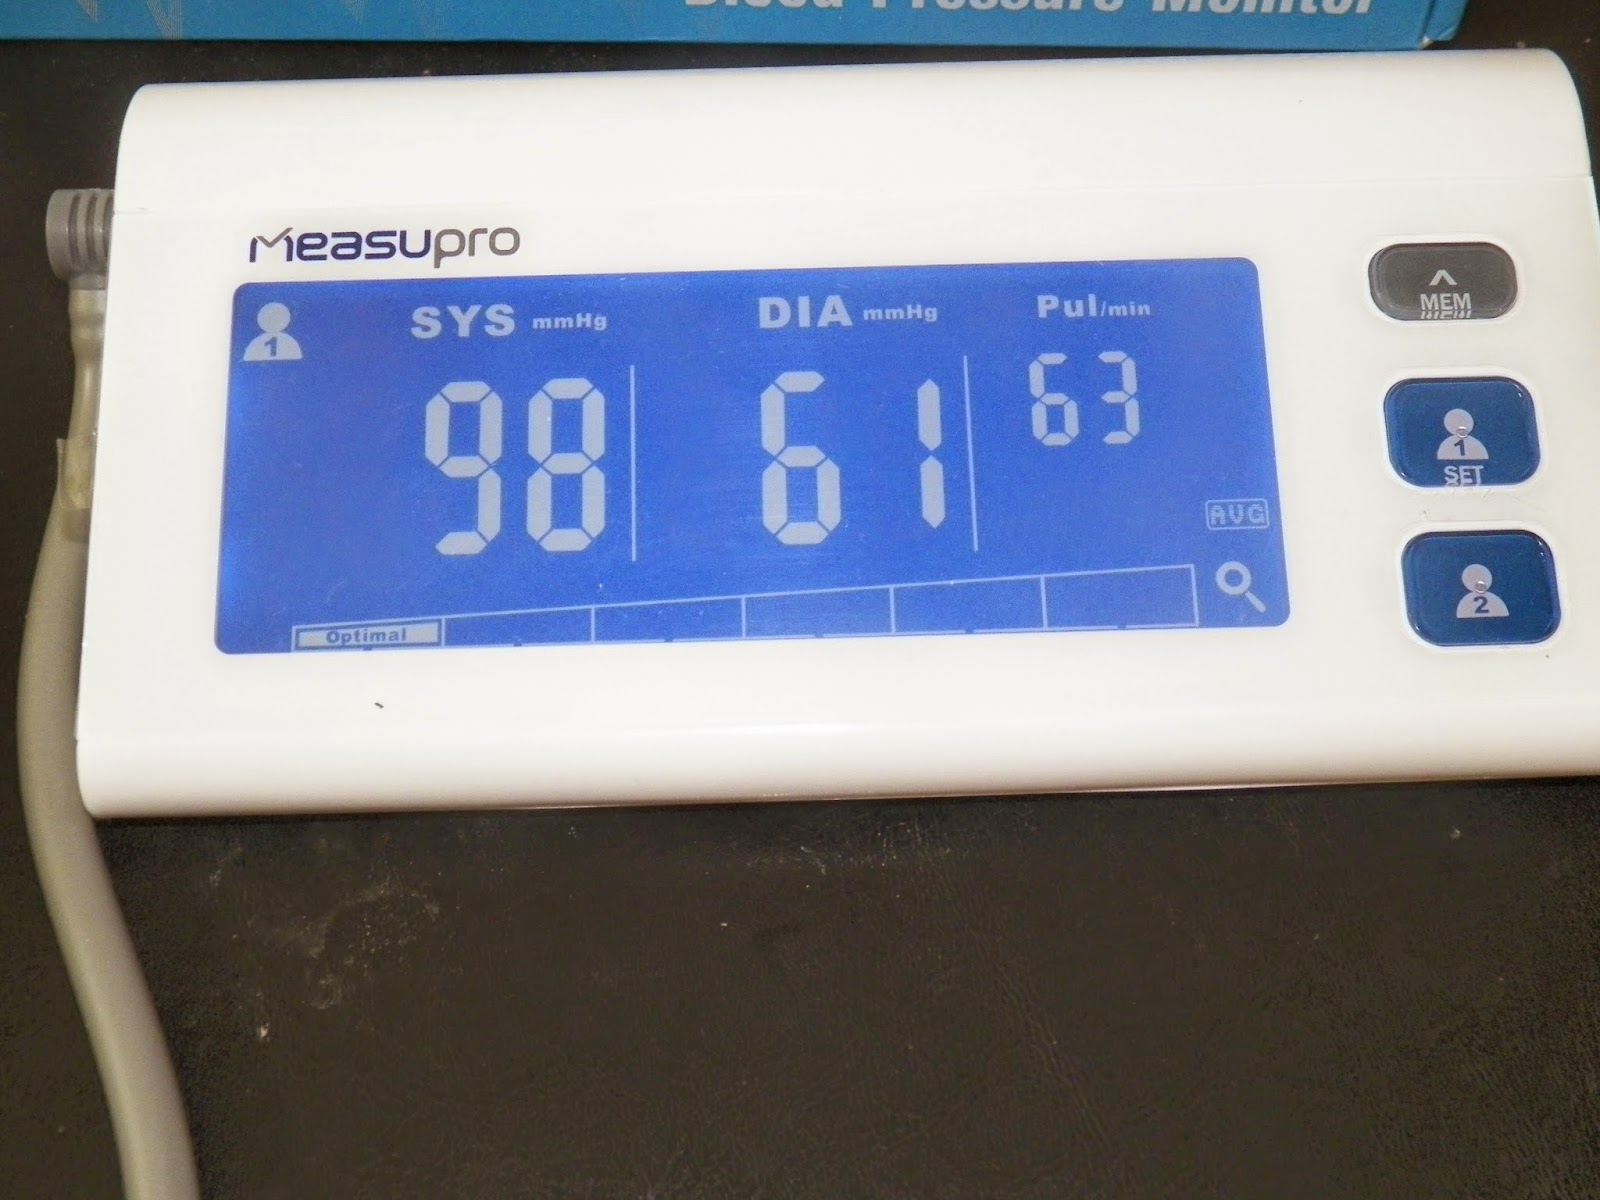 MeasuPro_Digital_Arm_BloodPressure_Monitor.jpg